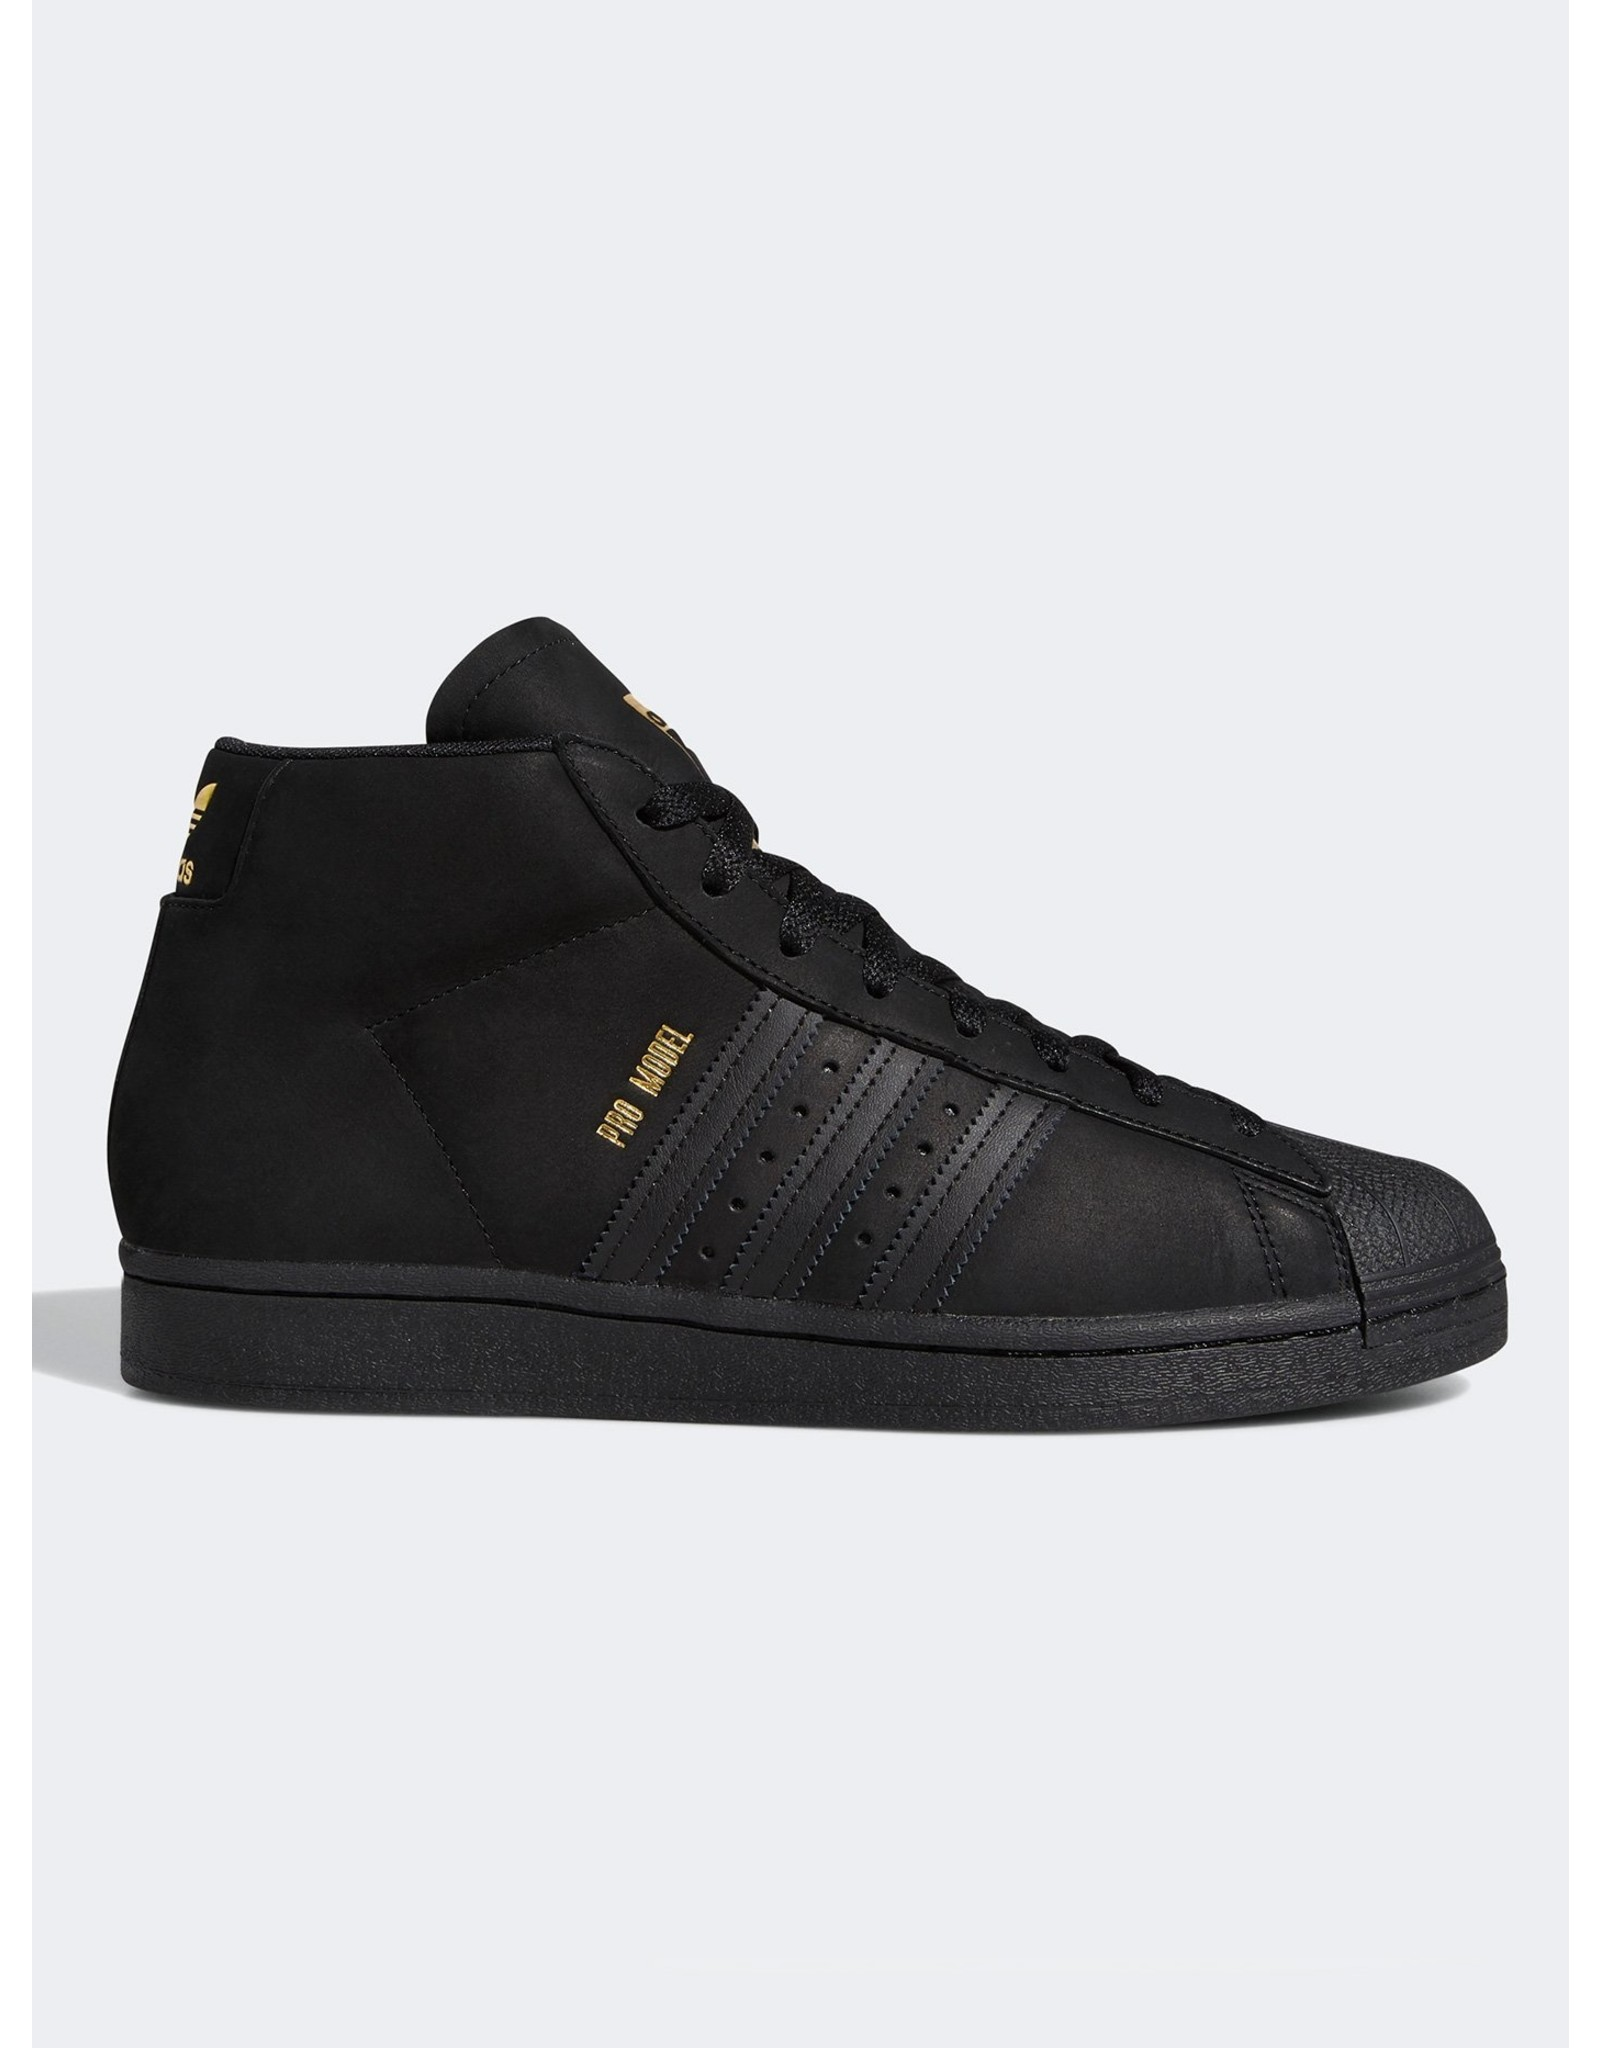 ADIDAS ADIDAS - PRO MODEL HIGH - BLACK/BLACK -